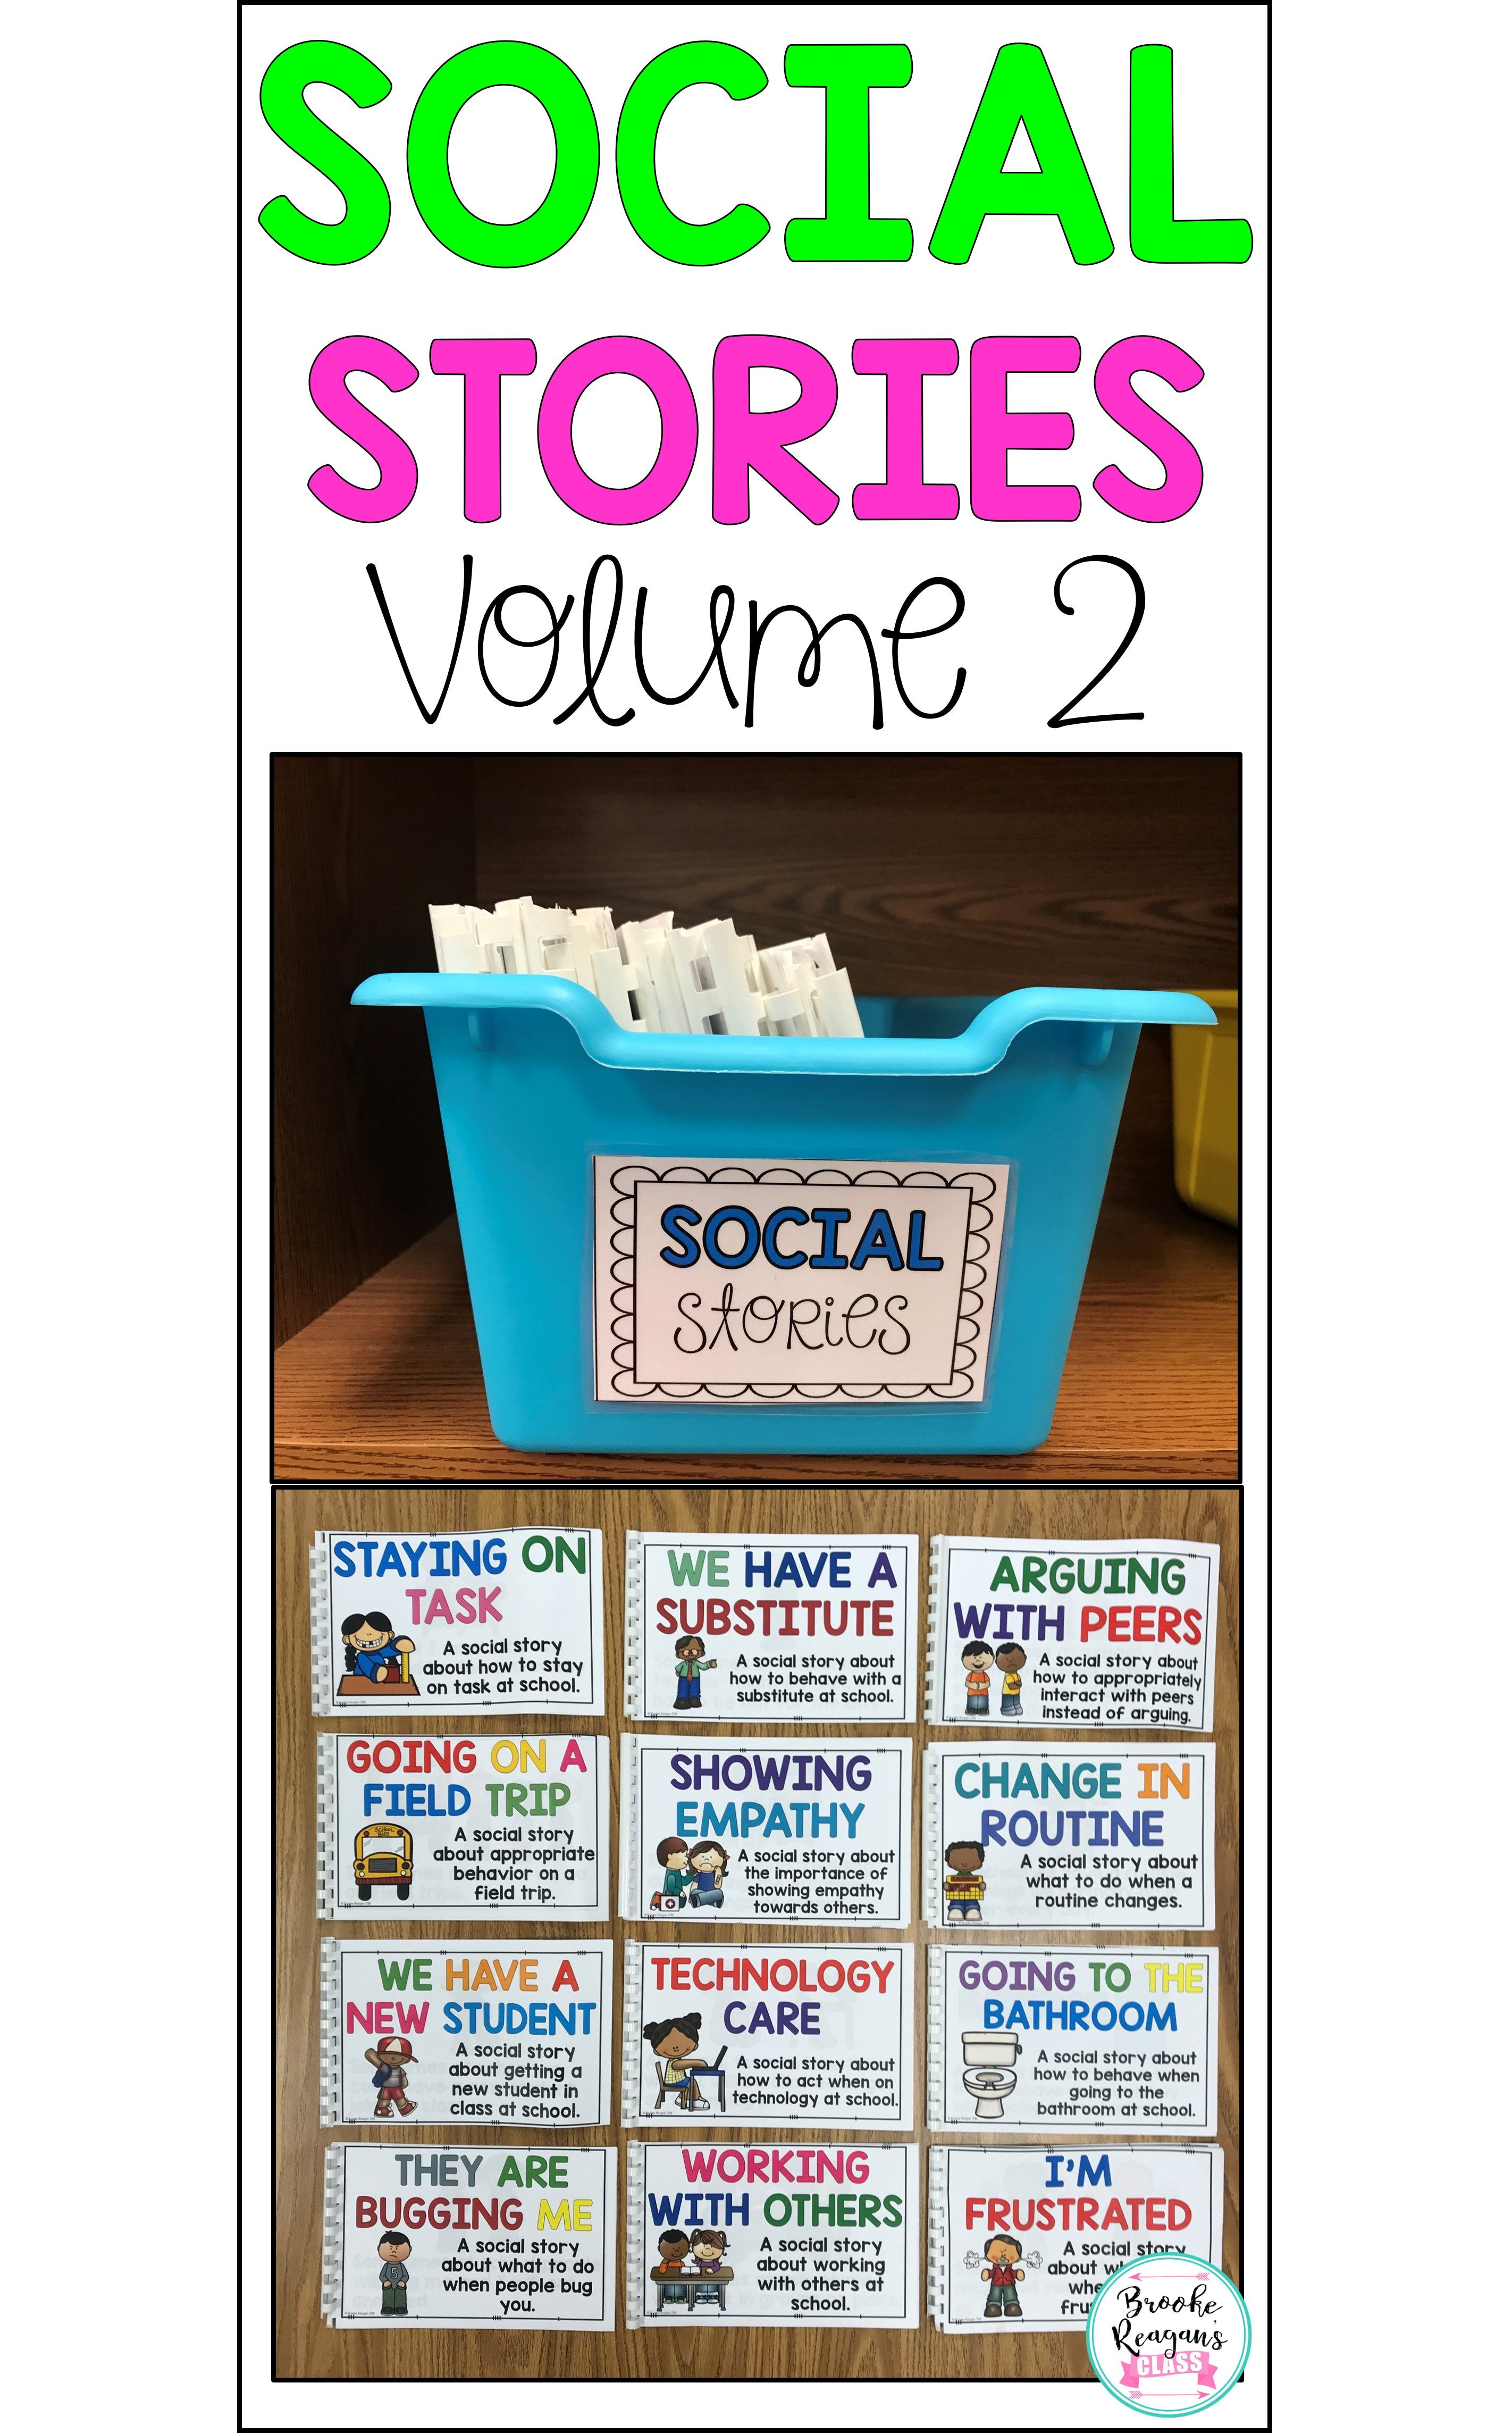 Social Story Volume 2 12 Social Stories Teaching Appropriate